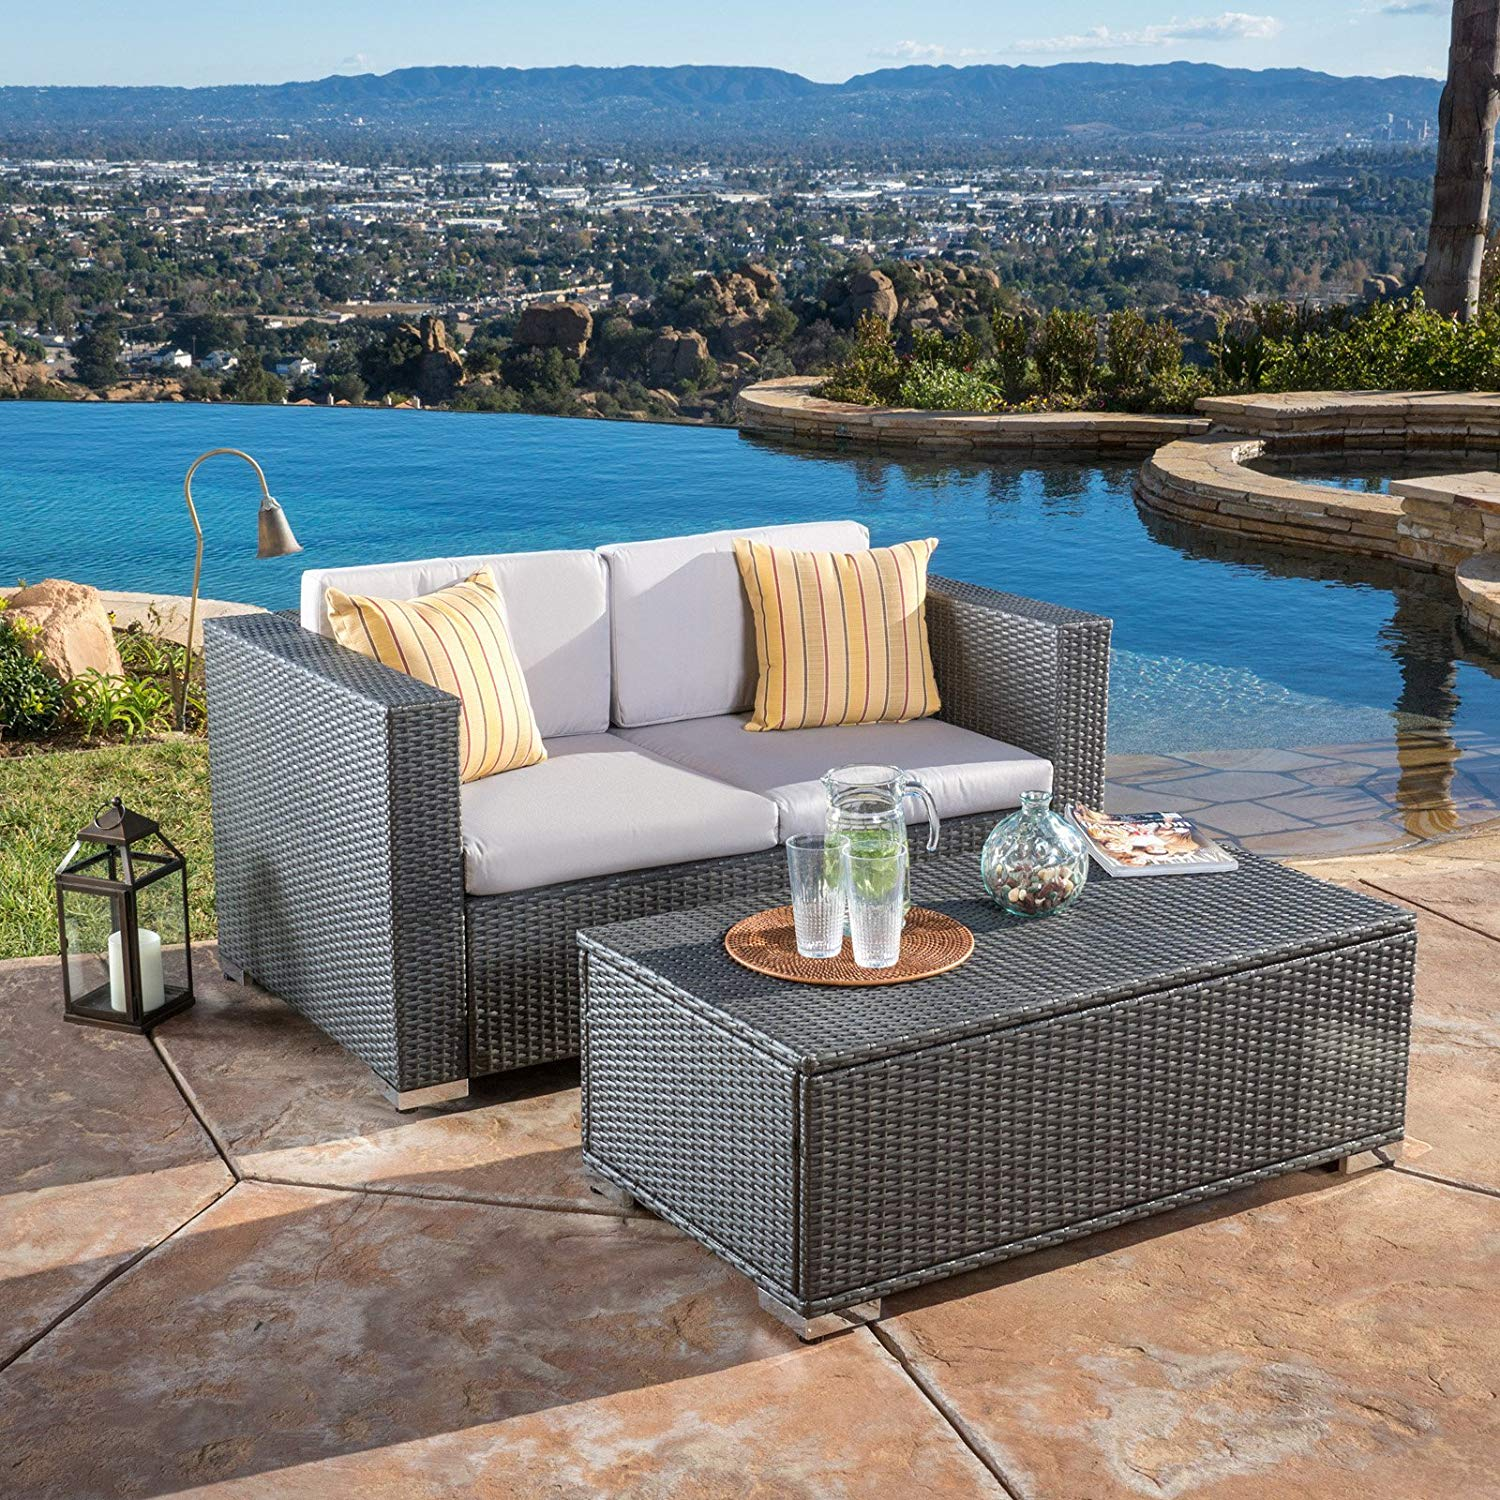 2 Piece Patio Sofa Set, Coffee Table with Smart Storage Inside, Durable, All-Weather Silver Gray Wicker, Polished Aluminum Leg Caps, Shelter Style Arms, Weather-Resistant Gray Cushions + Expert Guide